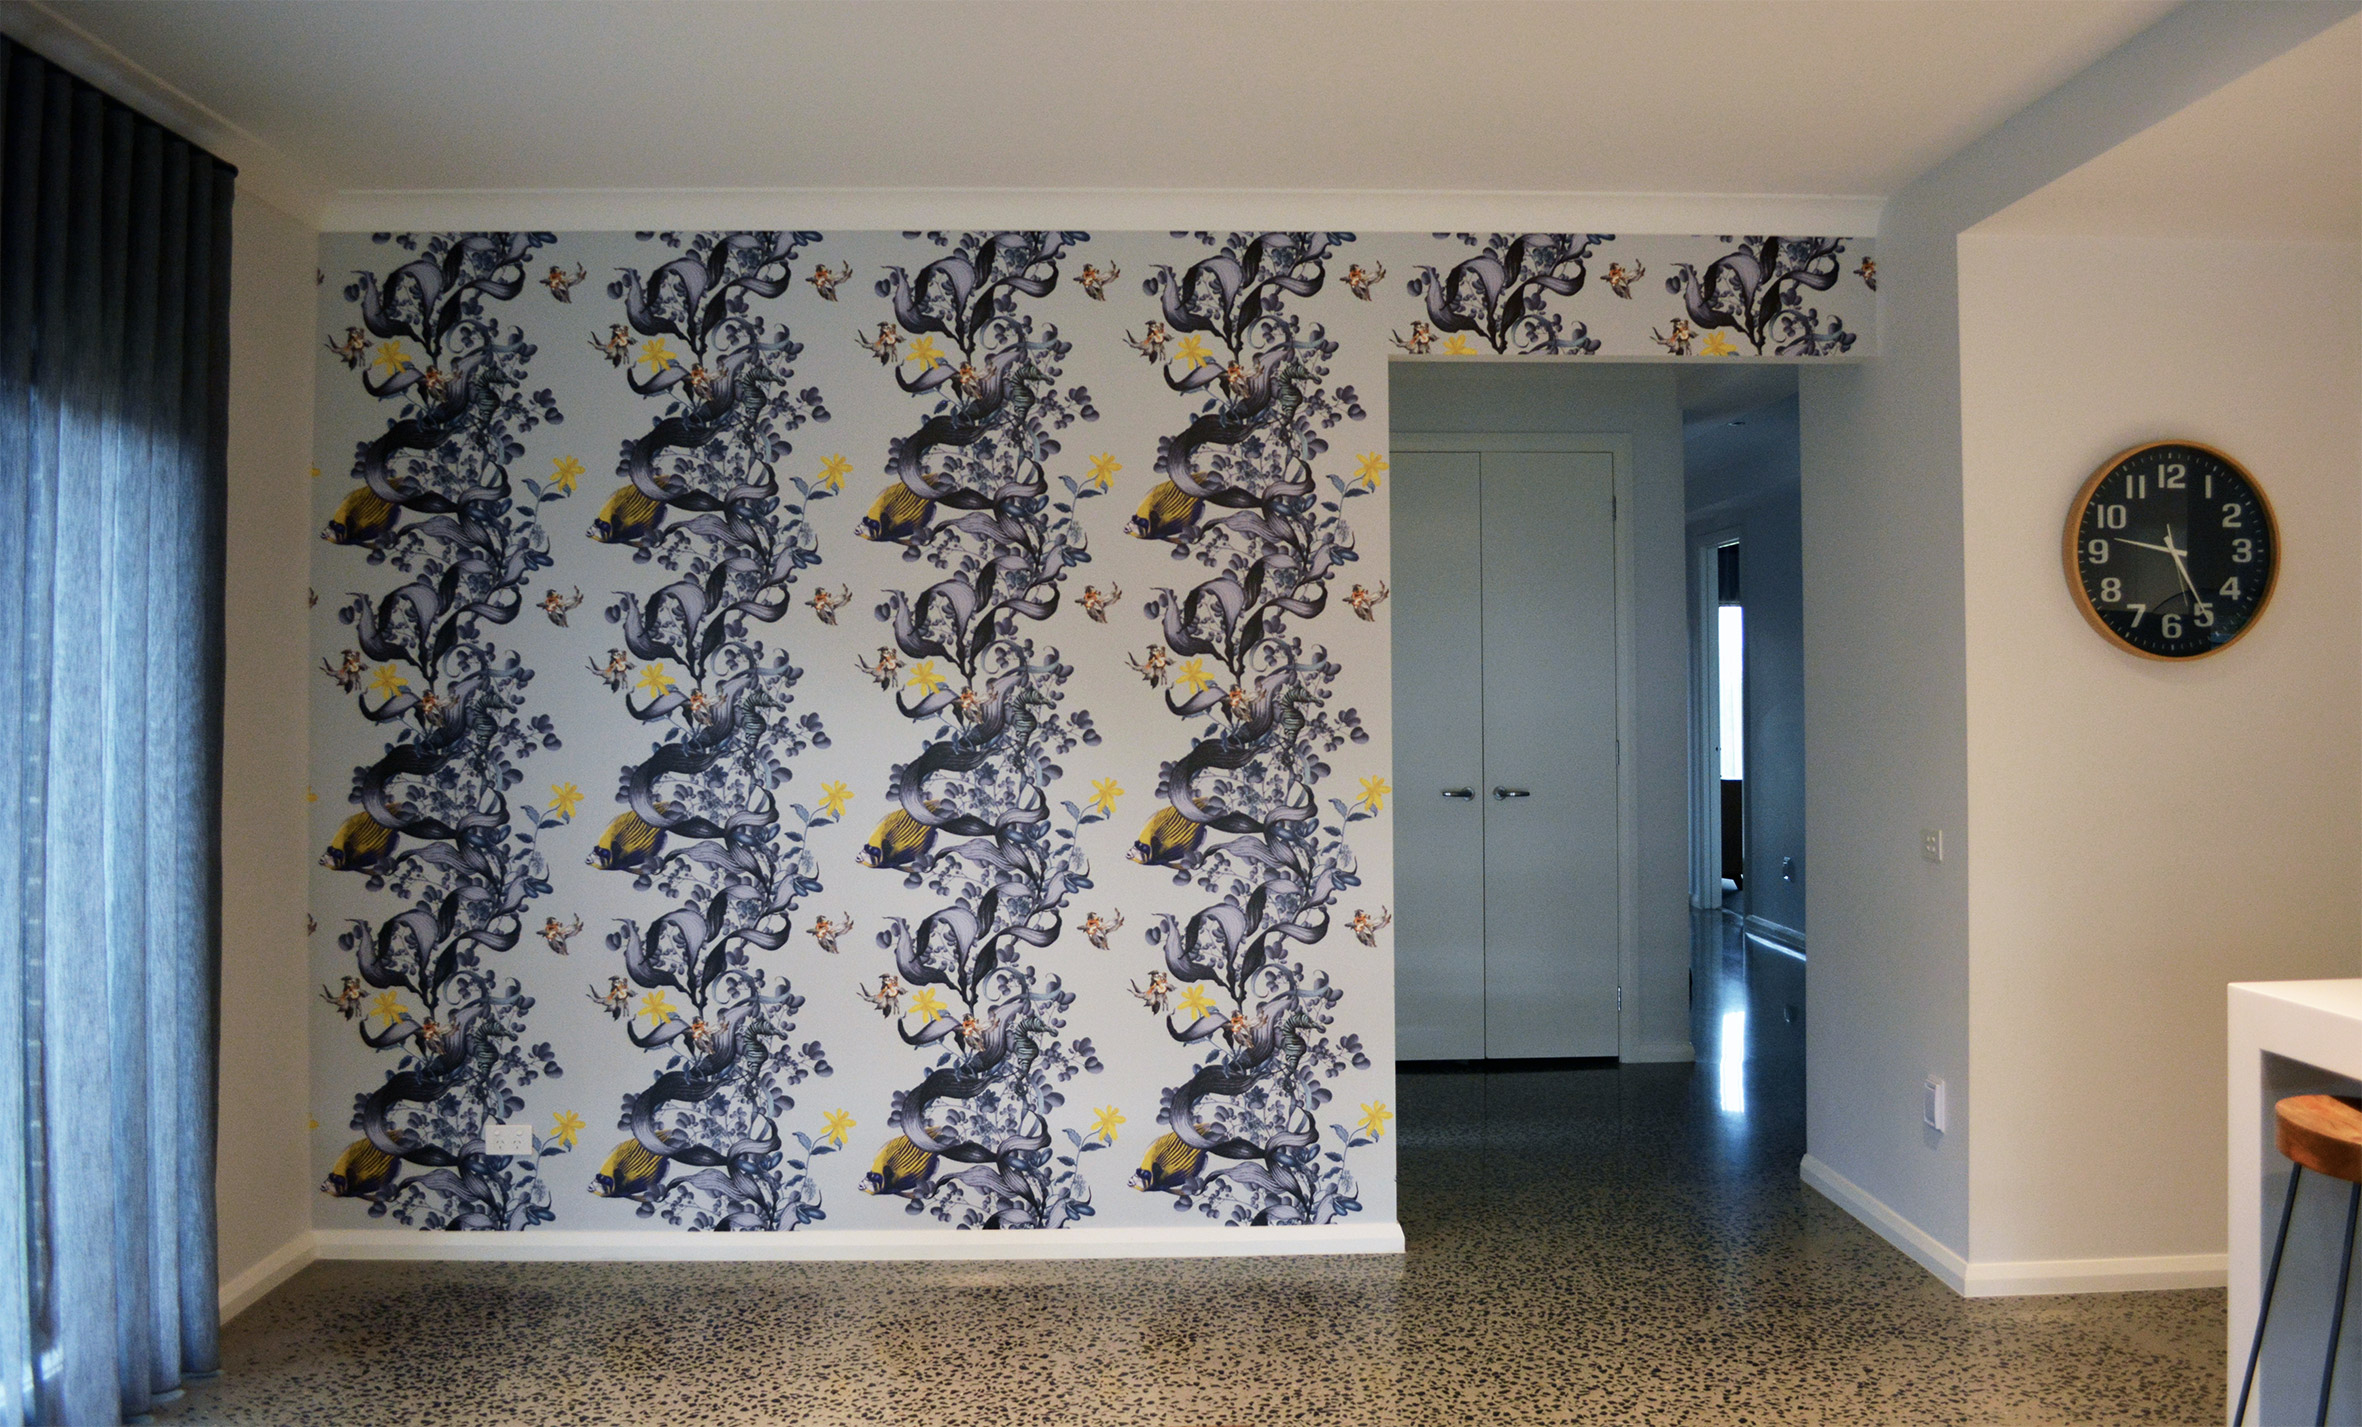 wallpaper underwater wonderland install by Prestige Wallpapering